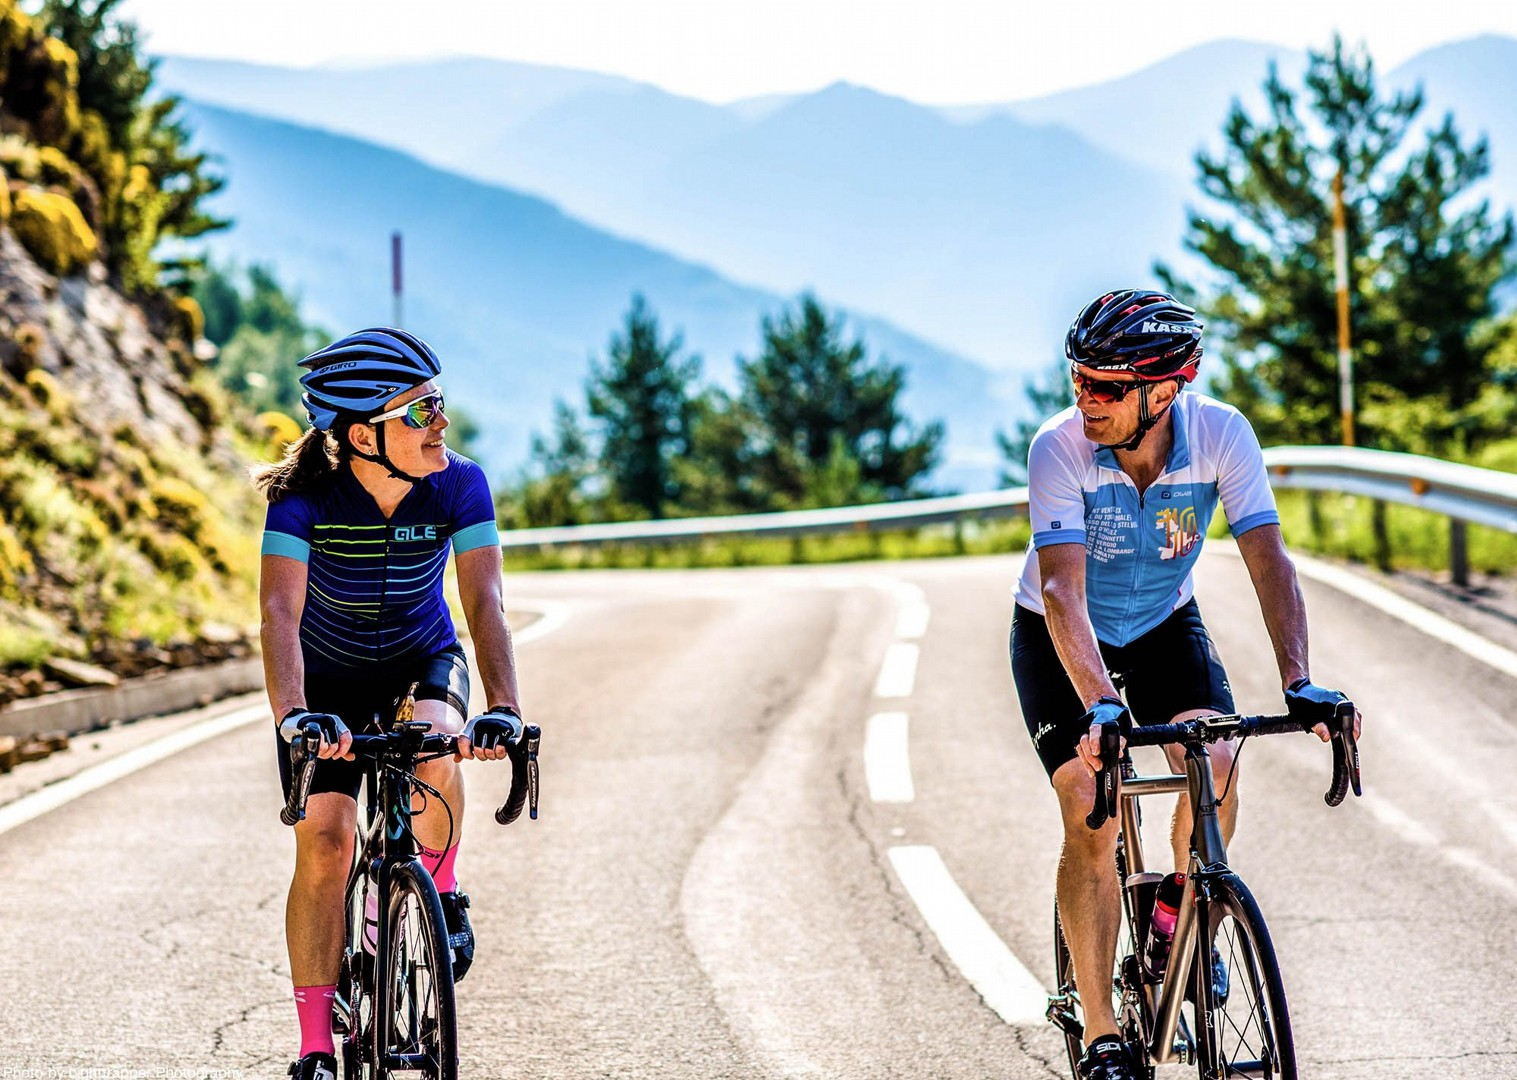 northern-spain-holiday-road-cycling-guided-tour-biking-mountains.jpg - NEW! Spain - Spanish Pyrenees Coast to Coast - Road Cycling